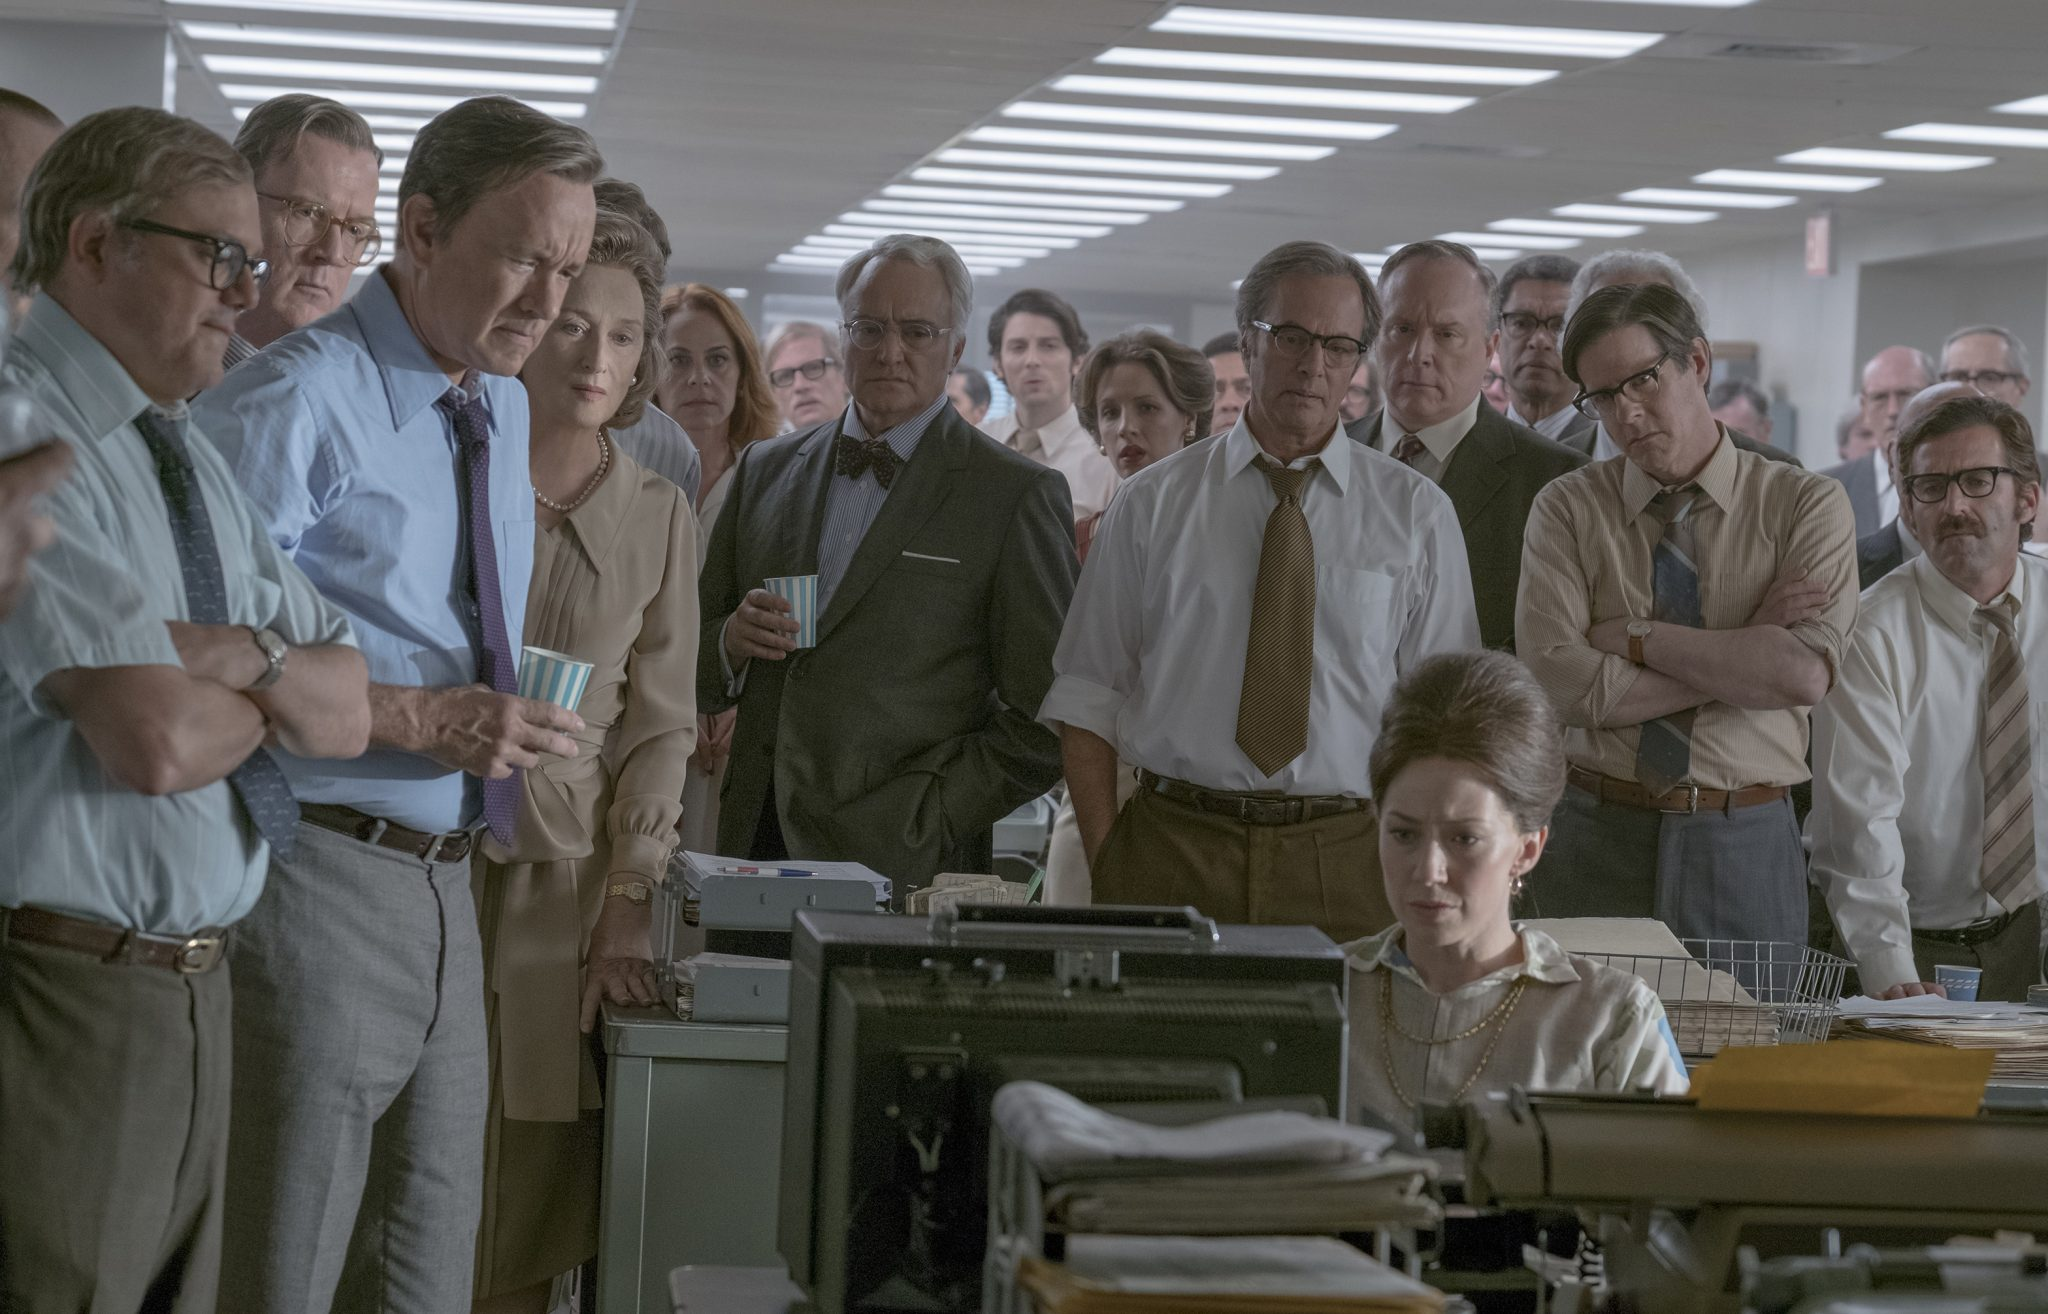 'The Post' is a slighted attempt at recalling a triumph